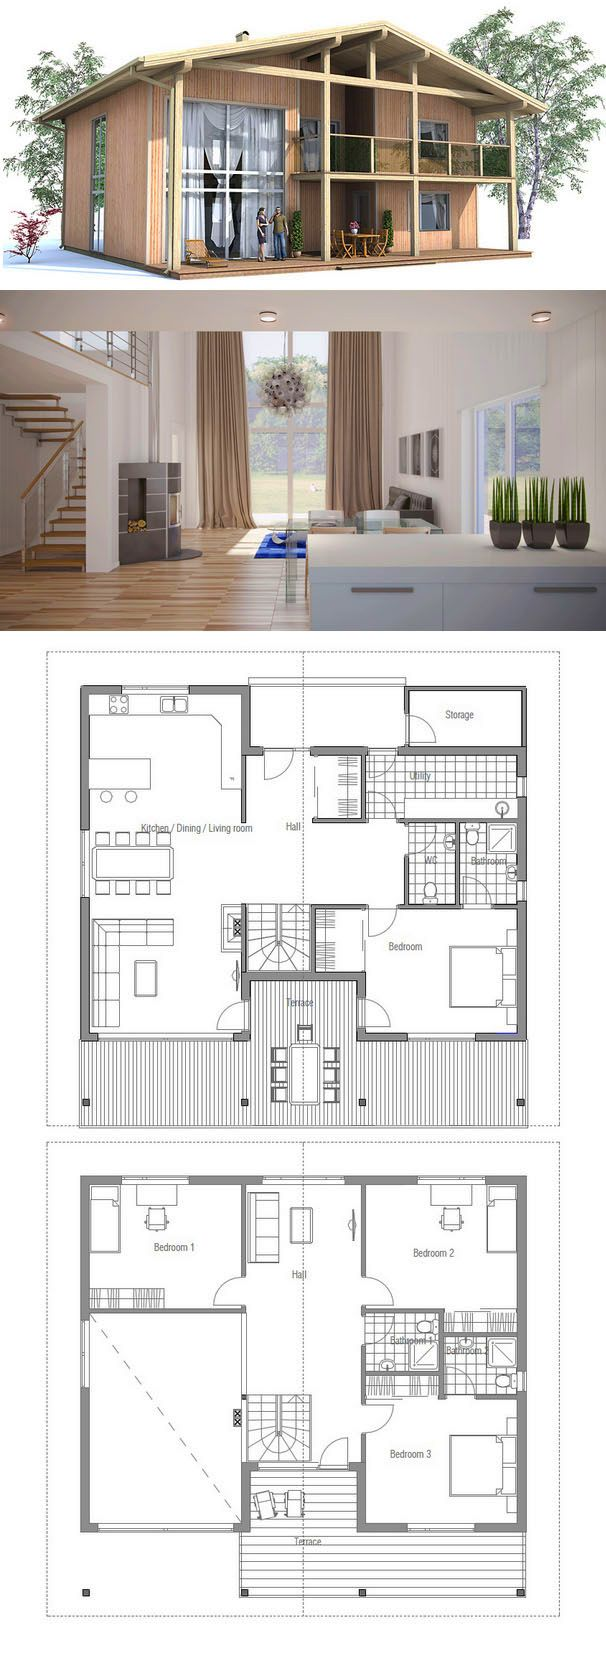 Modern 4 Bedroom House Plans 17 Best Ideas About 4 Bedroom House Plans On Pinterest Blue Open